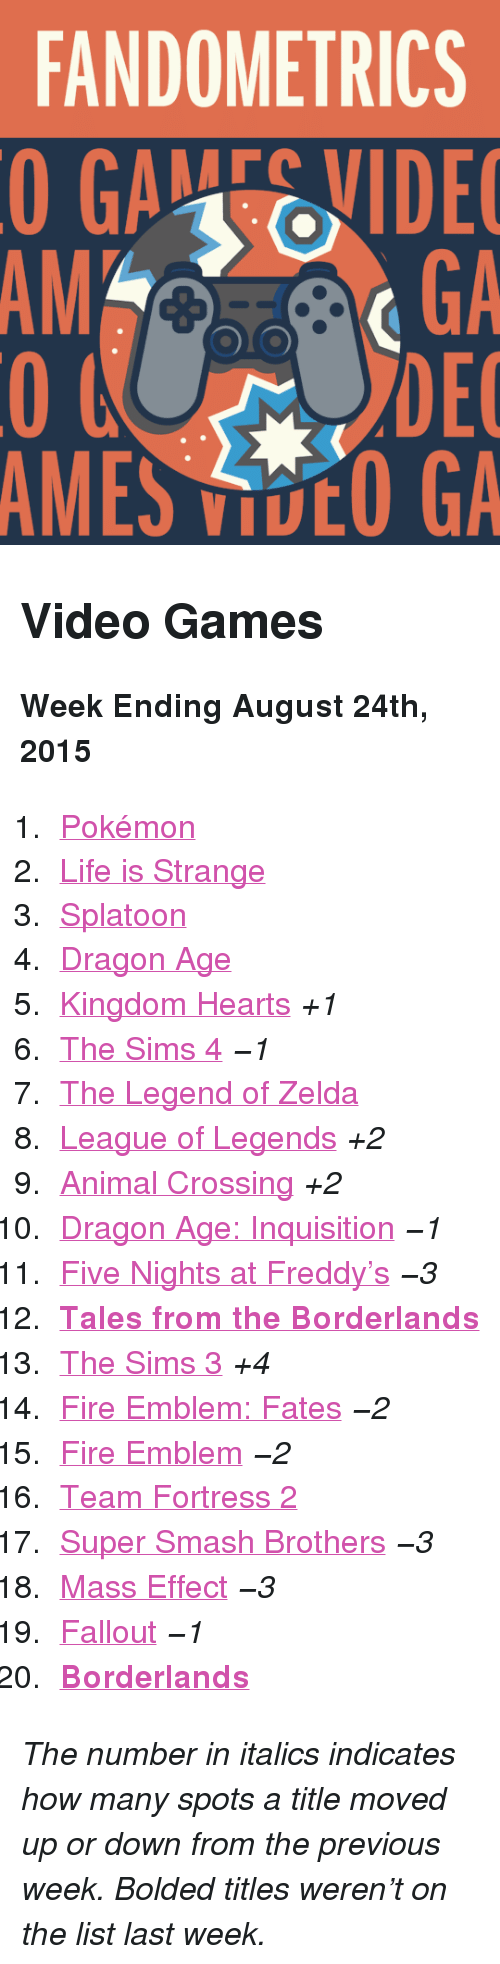 "Five Nights: FANDOMETRICS  GAEVIDE  GA  DEC  AMES VOO GA  AM <h2>Video Games</h2><p><b>Week Ending August 24th, 2015</b></p><ol><li><a href=""http://www.tumblr.com/search/pokemon"">Pokémon</a></li>  <li><a href=""http://www.tumblr.com/search/life%20is%20strange"">Life is Strange</a></li>  <li><a href=""http://www.tumblr.com/search/splatoon"">Splatoon</a></li>  <li><a href=""http://www.tumblr.com/search/dragon%20age"">Dragon Age</a></li>  <li><a href=""http://www.tumblr.com/search/kingdom%20hearts"">Kingdom Hearts</a> <i>+1</i></li>  <li><a href=""http://www.tumblr.com/search/sims%204"">The Sims 4</a> <i>−1</i></li>  <li><a href=""http://www.tumblr.com/search/legend%20of%20zelda"">The Legend of Zelda</a></li>  <li><a href=""http://www.tumblr.com/search/league%20of%20legends"">League of Legends</a> <i>+2</i></li>  <li><a href=""http://www.tumblr.com/search/acnl"">Animal Crossing</a> <i>+2</i></li>  <li><a href=""http://www.tumblr.com/search/dragon%20age%20inquisition"">Dragon Age: Inquisition</a> <i>−1</i></li>  <li><a href=""http://www.tumblr.com/search/five%20nights%20at%20freddy's"">Five Nights at Freddy&rsquo;s</a> <i>−3</i></li>  <li><a href=""http://www.tumblr.com/search/tales%20from%20the%20borderlands""><b>Tales from the Borderlands</b></a></li>  <li><a href=""http://www.tumblr.com/search/sims%203"">The Sims 3</a> <i>+4</i></li>  <li><a href=""http://www.tumblr.com/search/fire%20emblem%20fates"">Fire Emblem: Fates</a> <i>−2</i></li>  <li><a href=""http://www.tumblr.com/search/fire%20emblem"">Fire Emblem</a> <i>−2</i></li>  <li><a href=""http://www.tumblr.com/search/tf2"">Team Fortress 2</a></li>  <li><a href=""http://www.tumblr.com/search/super%20smash%20bros"">Super Smash Brothers</a> <i>−3</i></li>  <li><a href=""http://www.tumblr.com/search/mass%20effect"">Mass Effect</a> <i>−3</i></li>  <li><a href=""http://www.tumblr.com/search/fallout"">Fallout</a> <i>−1</i></li>  <li><a href=""http://www.tumblr.com/search/borderlands""><b>Borderlands</b></a></li></ol><p><i>The number in italics indicates how many spots a title moved up or down from the previous week. Bolded titles weren't on the list last week.</i></p>"